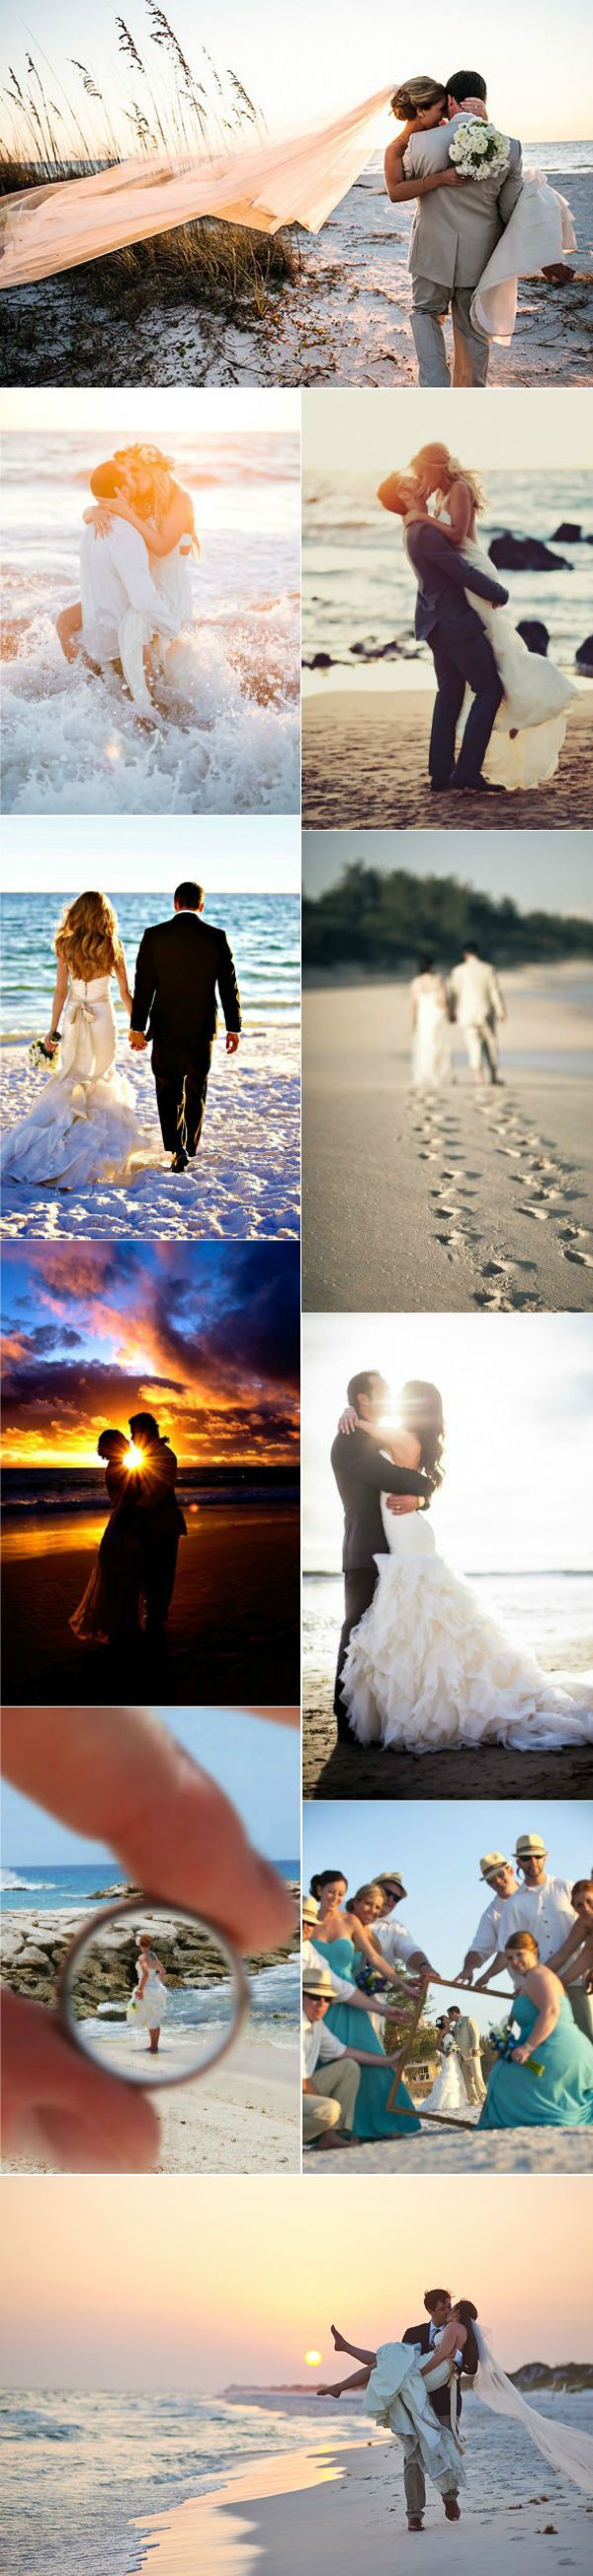 927 Best Beach Wedding Ideas Images On Pinterest Beach Weddings